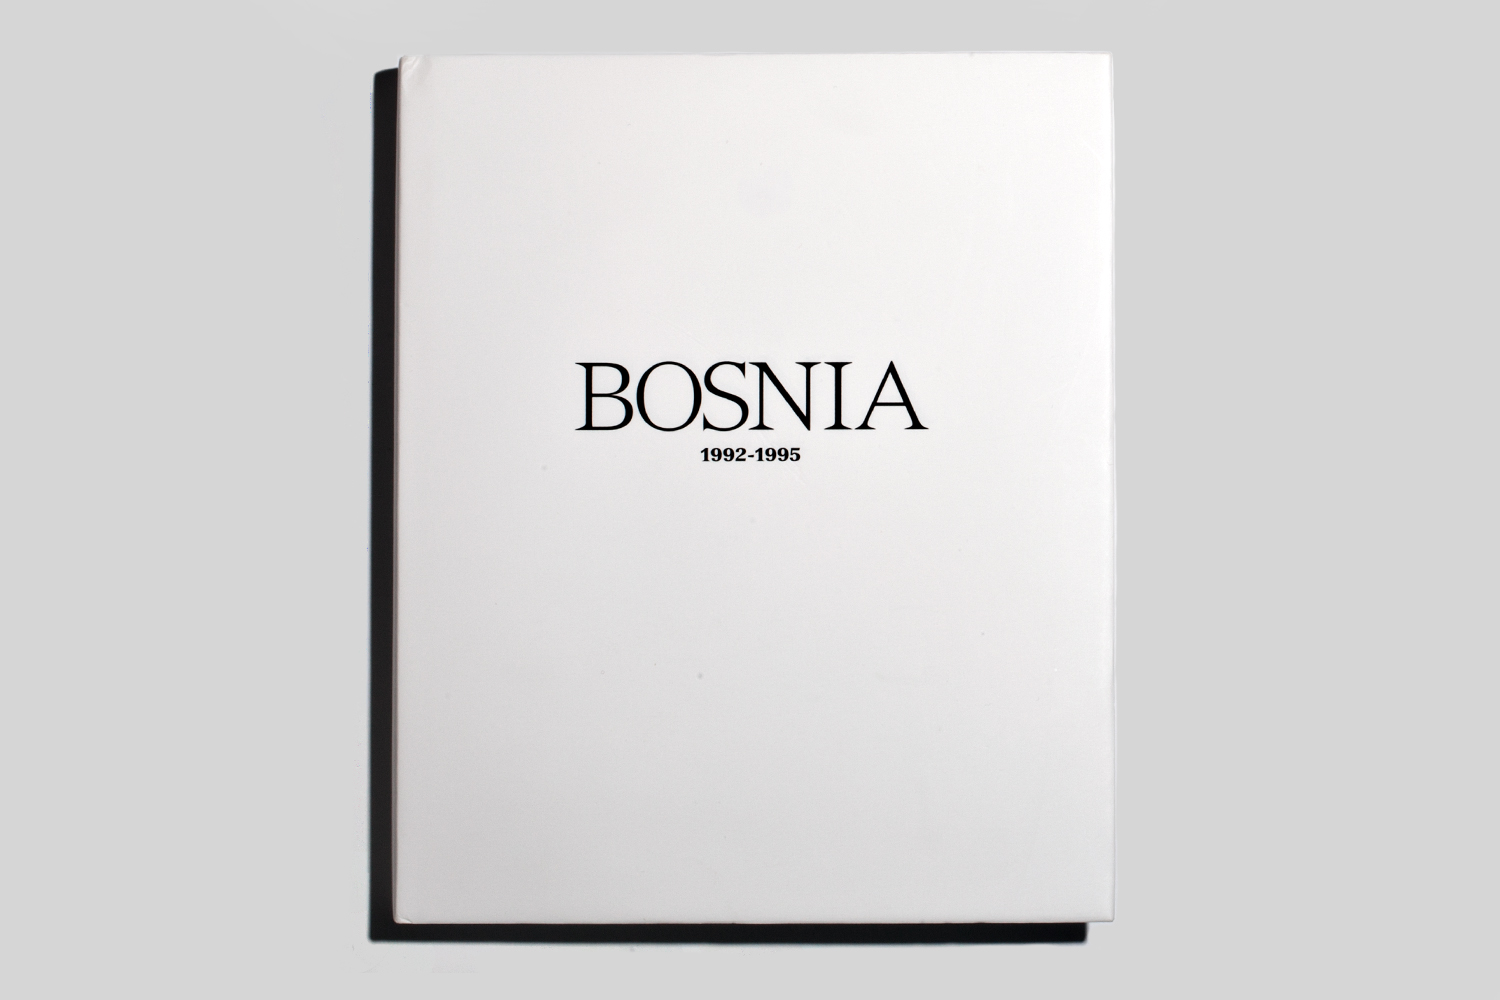 Bosnia: 1992-1995 , edited by Jon Jones, selected by Patrick Witty, international picture editor, TIME